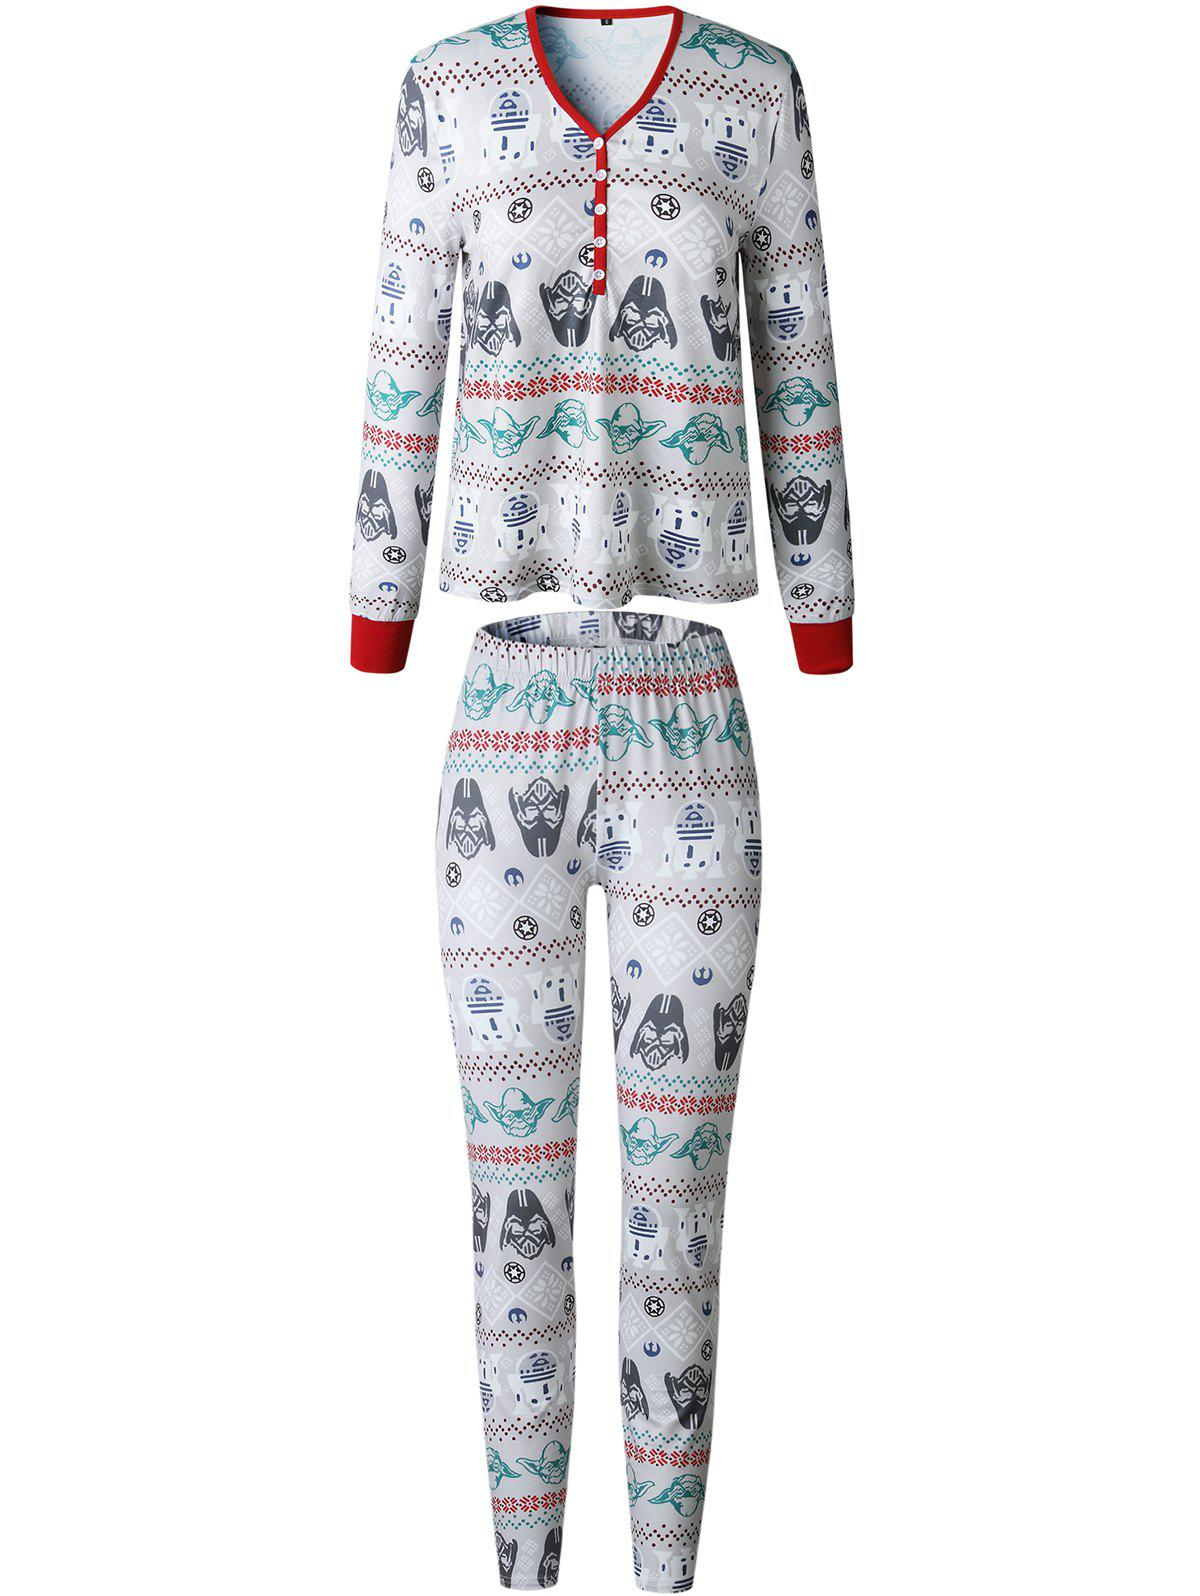 Store Christmas  Family Pajama Long Sleeves Casual  Print  Sets Parent-Child Home Suit Pyjamas